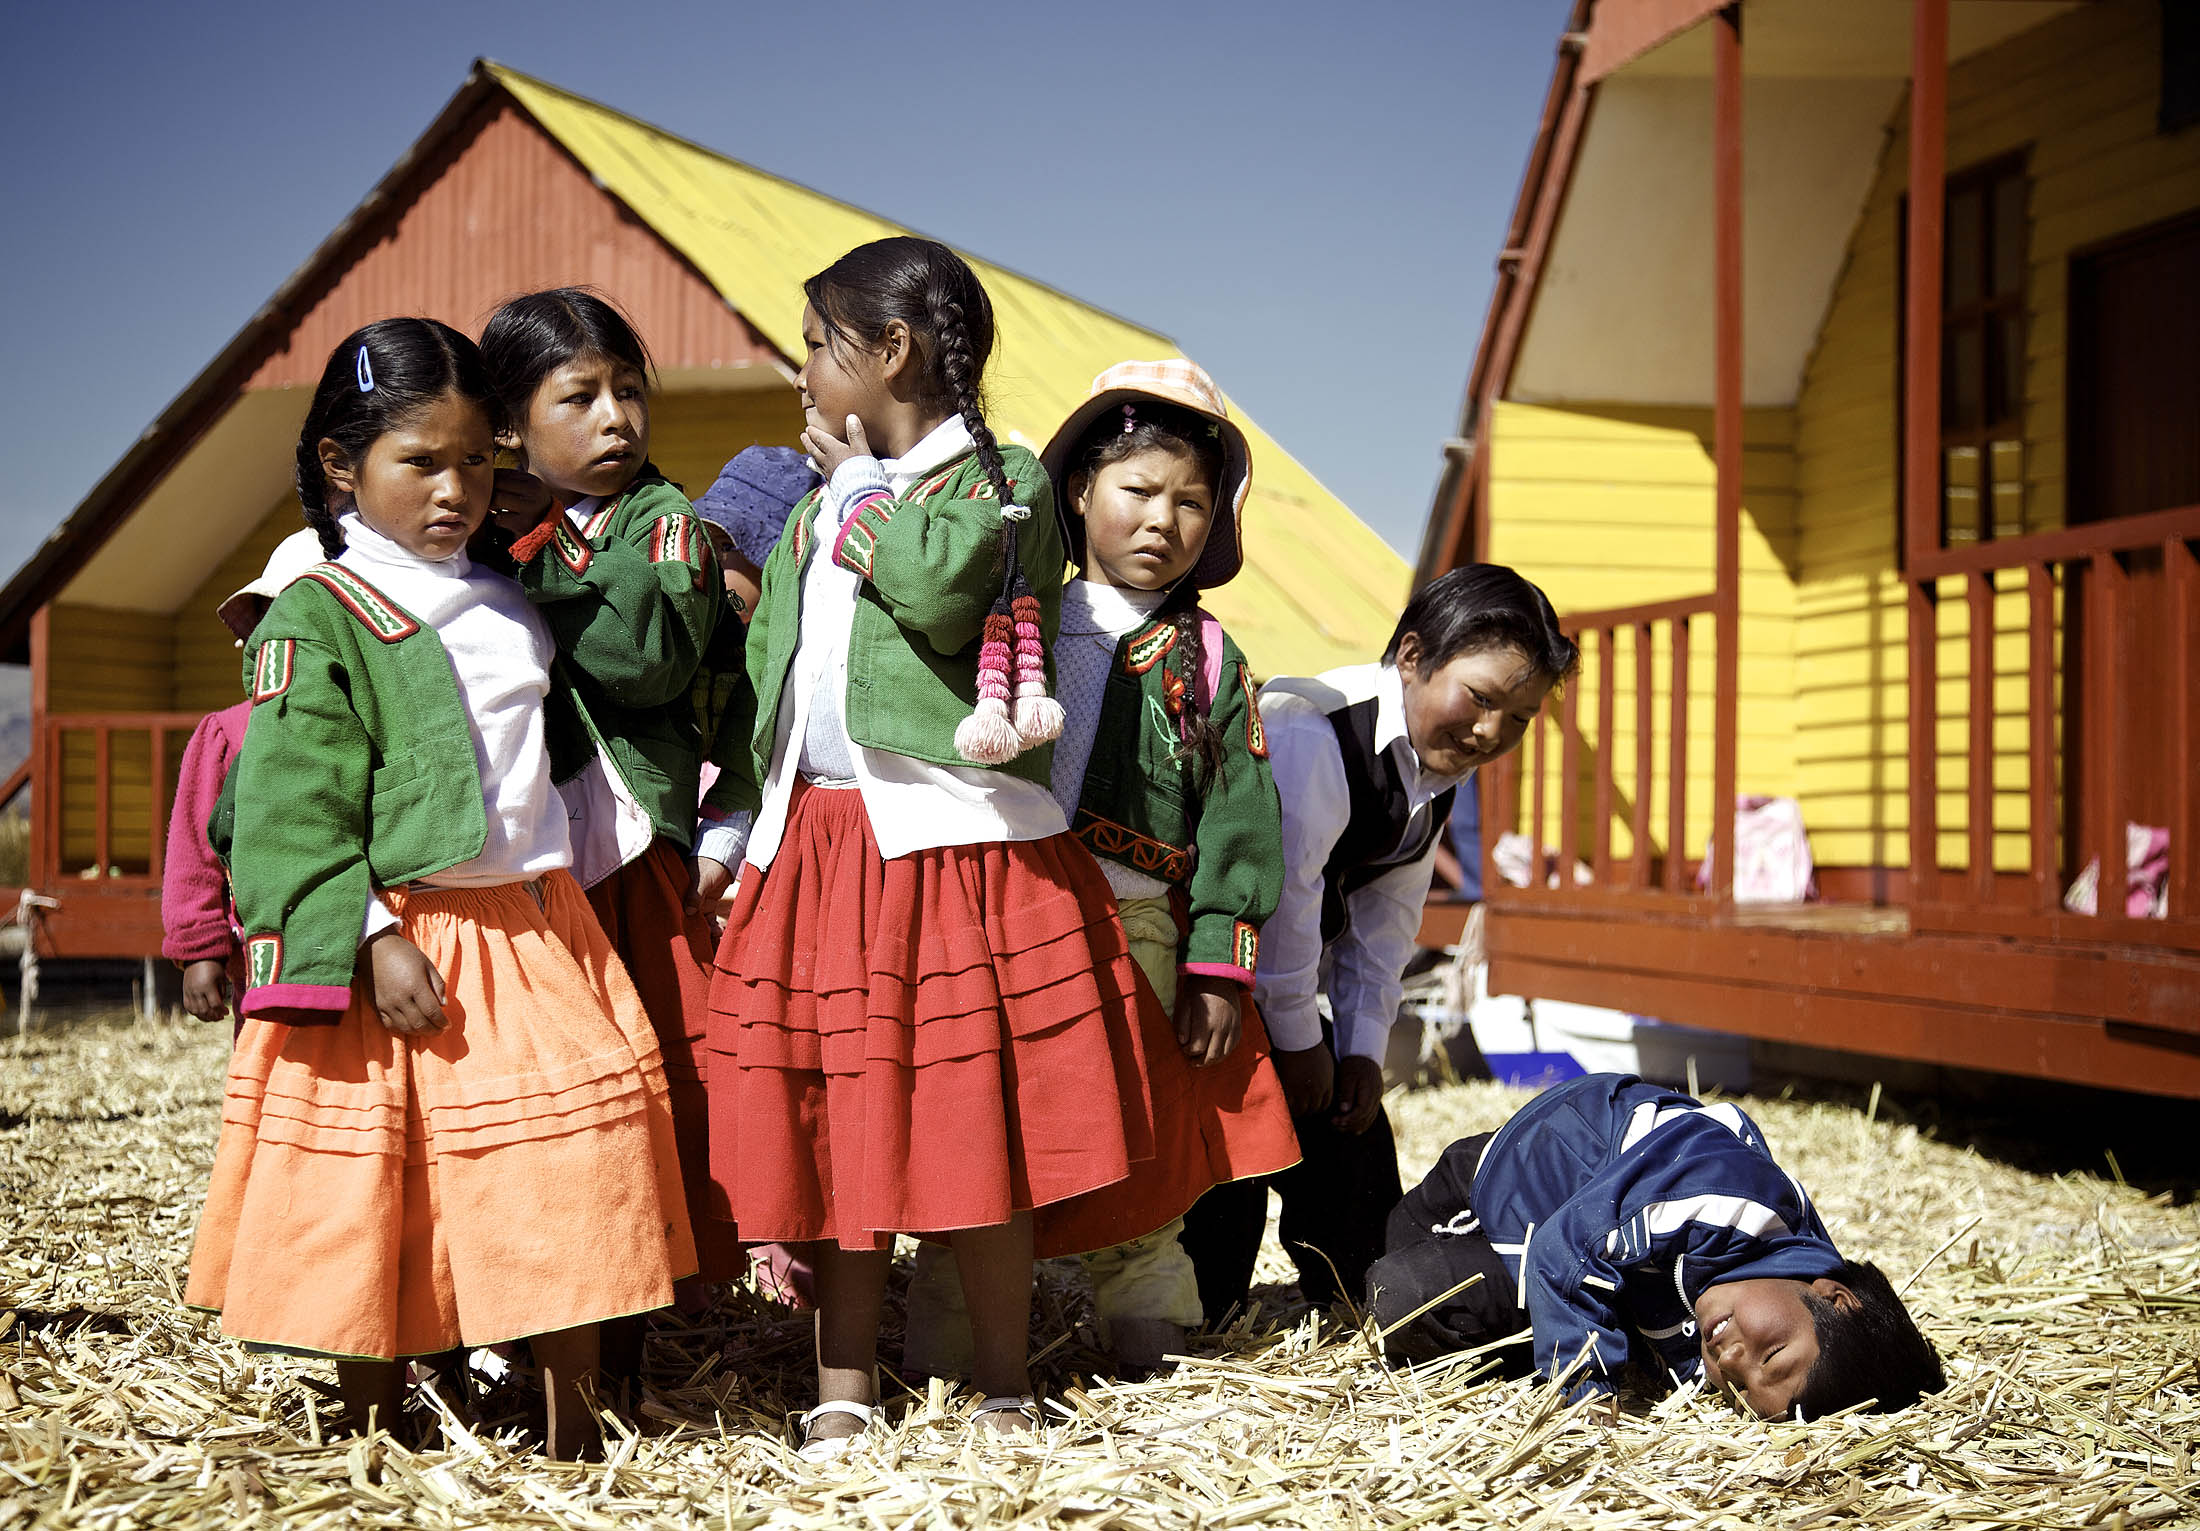 Floating school on Uros Islands, Titicaca, Peru